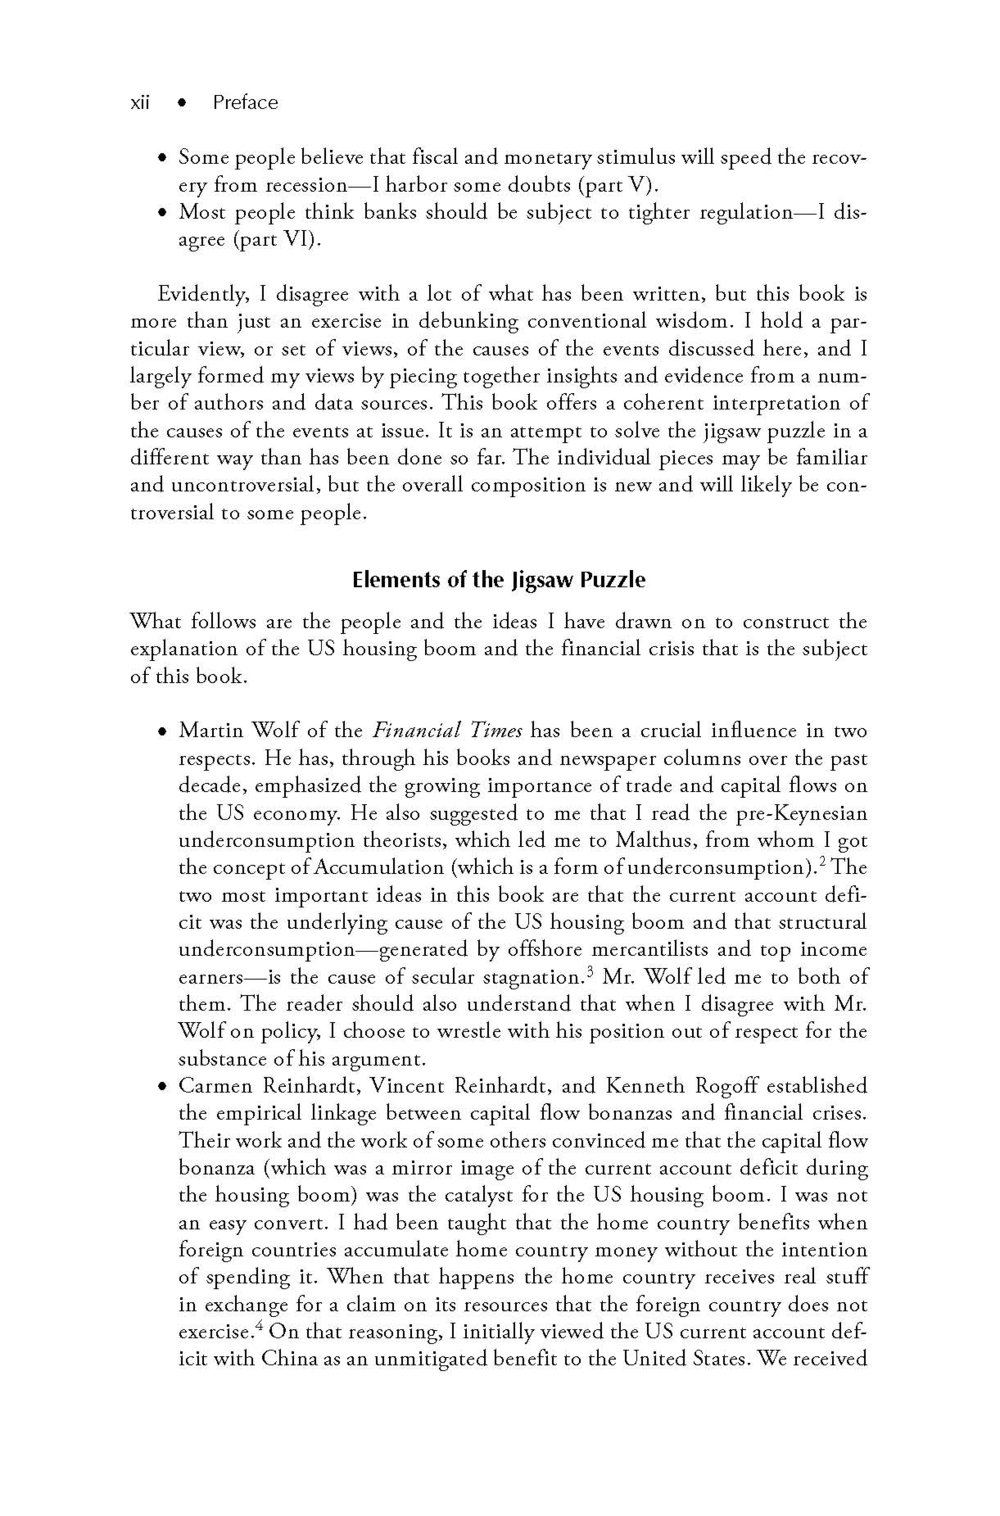 FCR Book Intro Section_Page_10.jpg